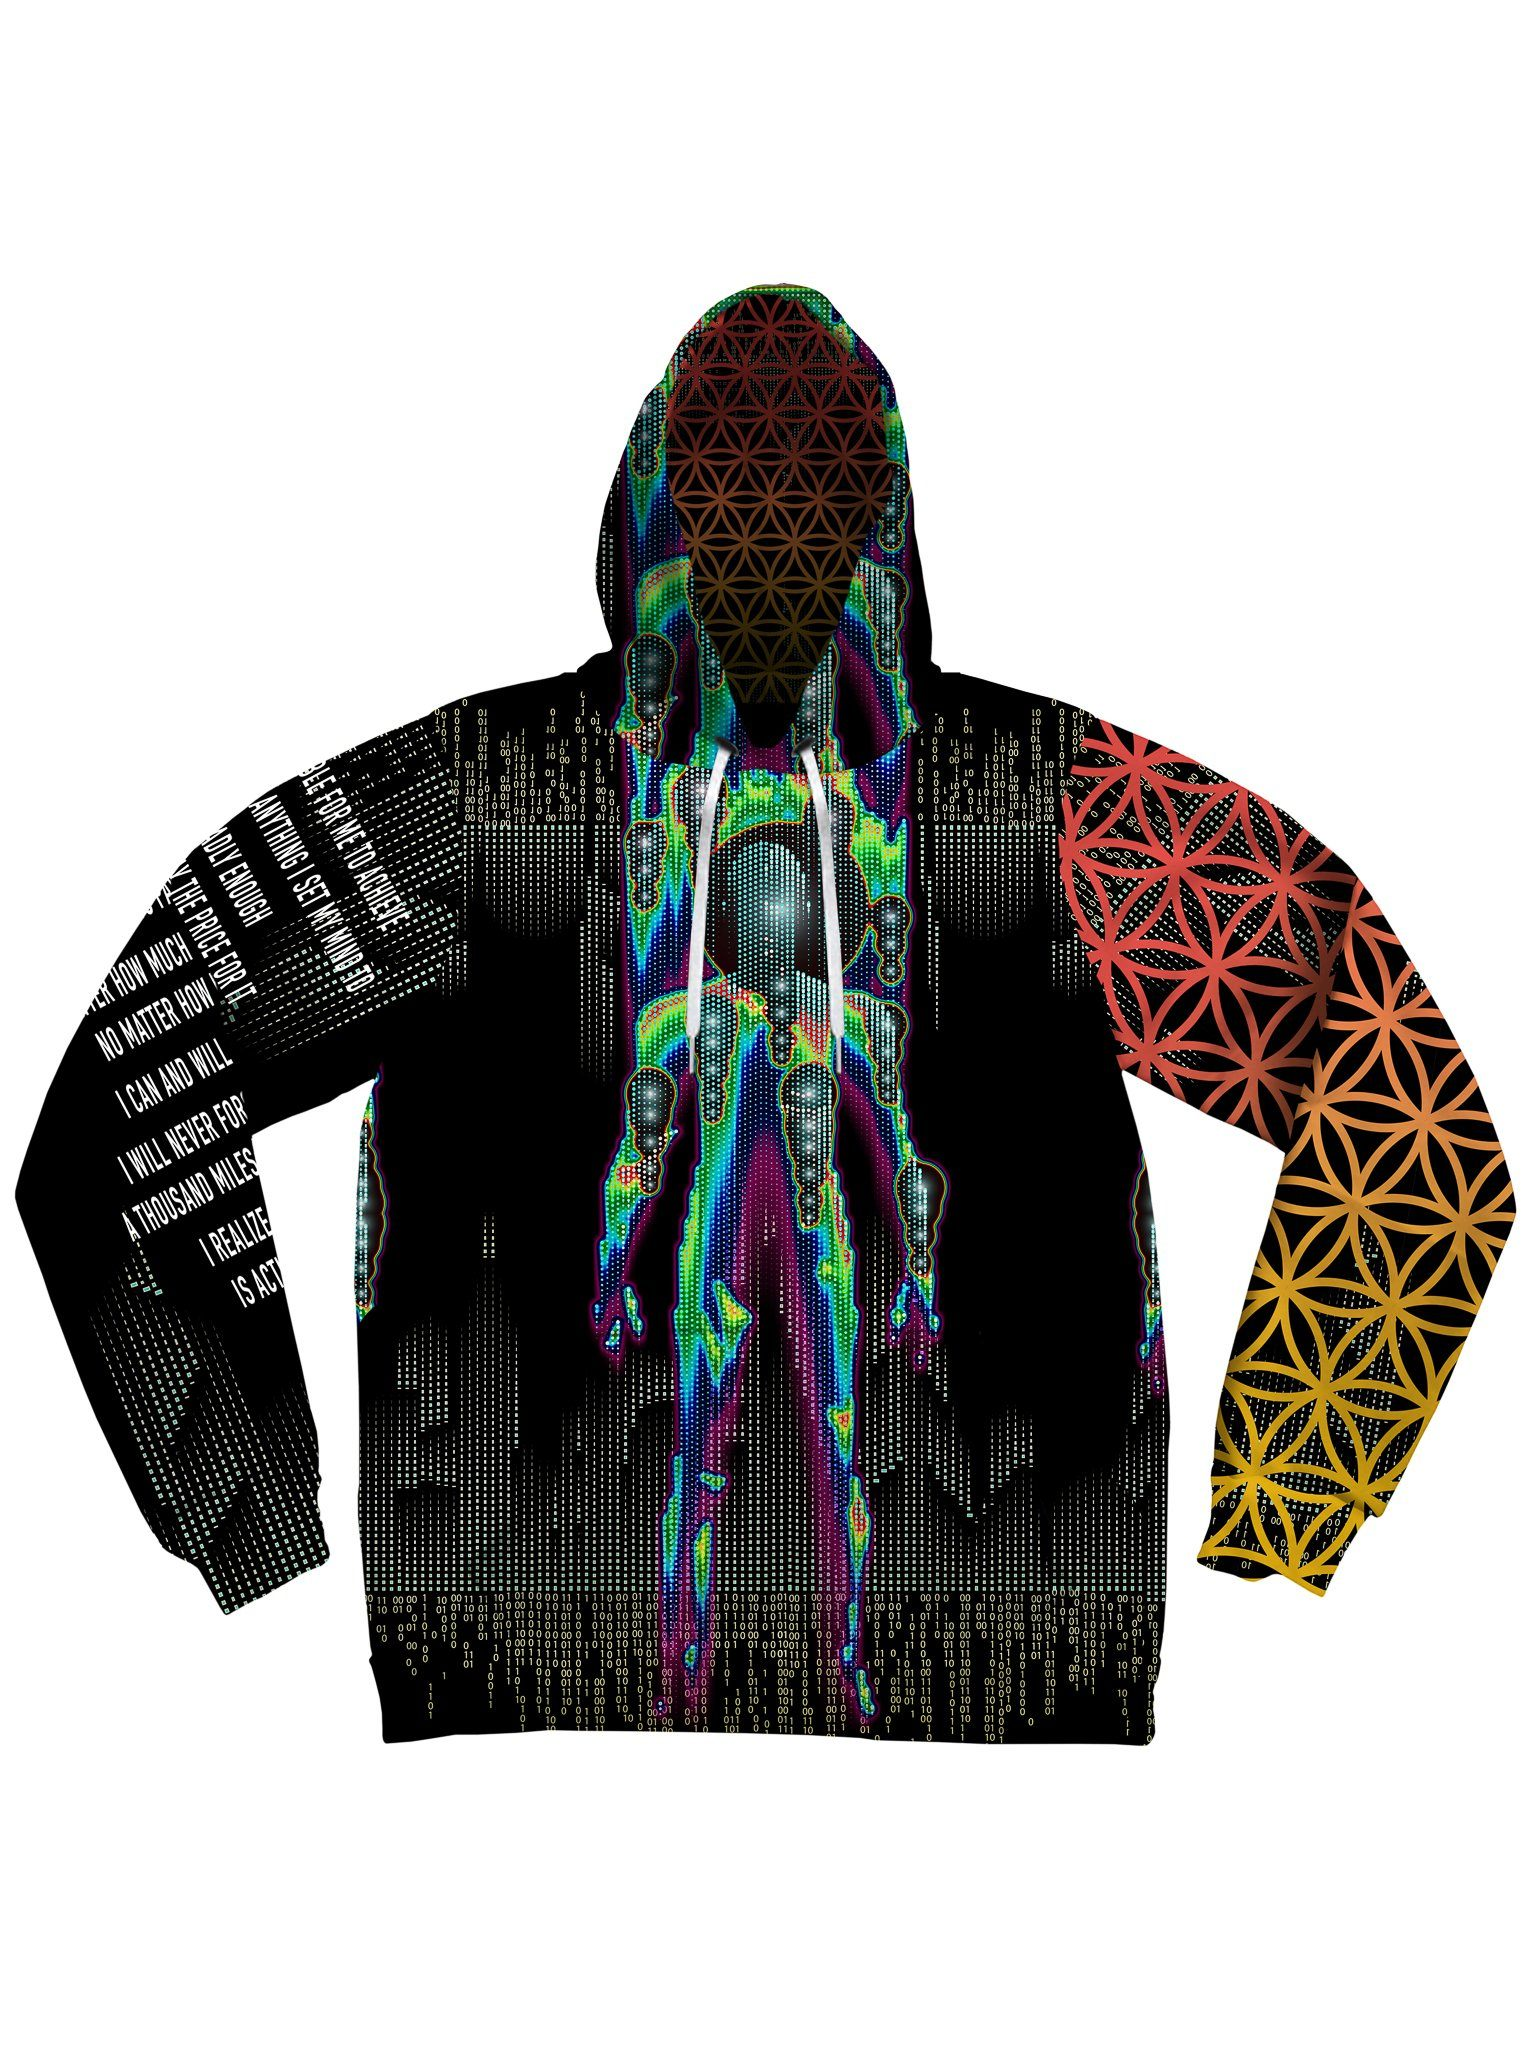 Transforming Unisex Hoodie Pullover Hoodies Electro Threads